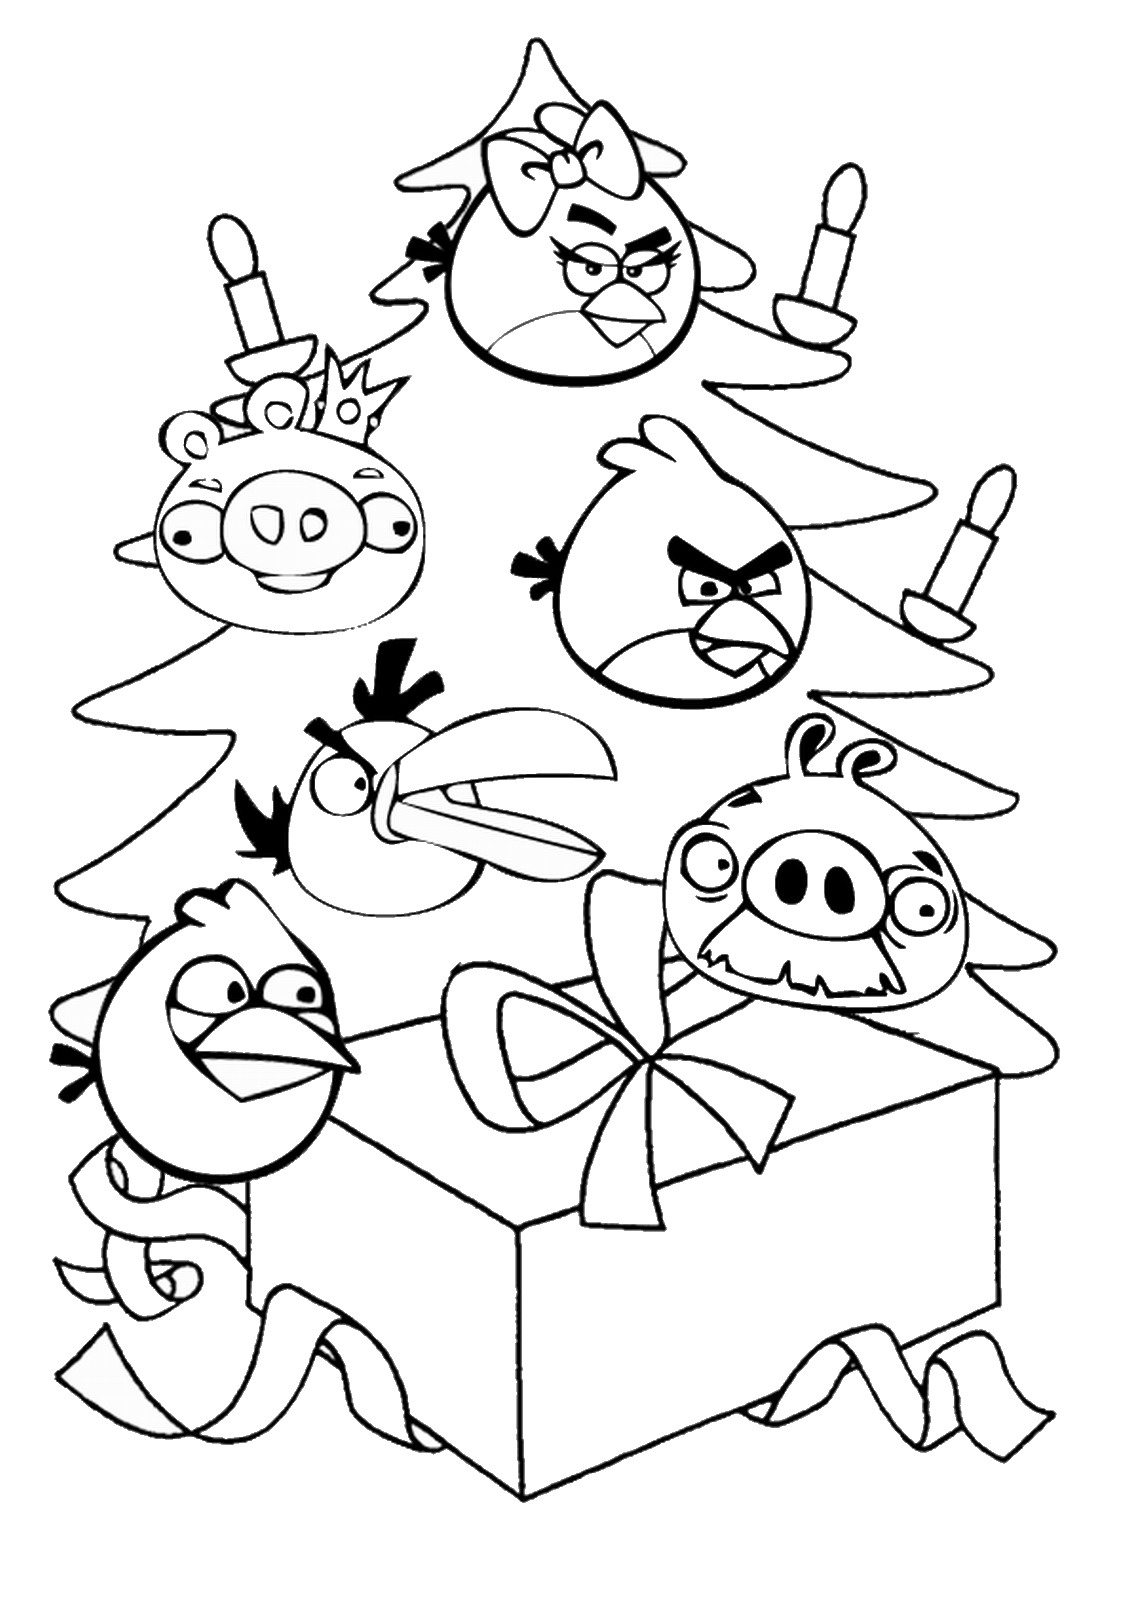 angry birds printable coloring pages angry birds coloring pages for your small kids birds pages printable coloring angry